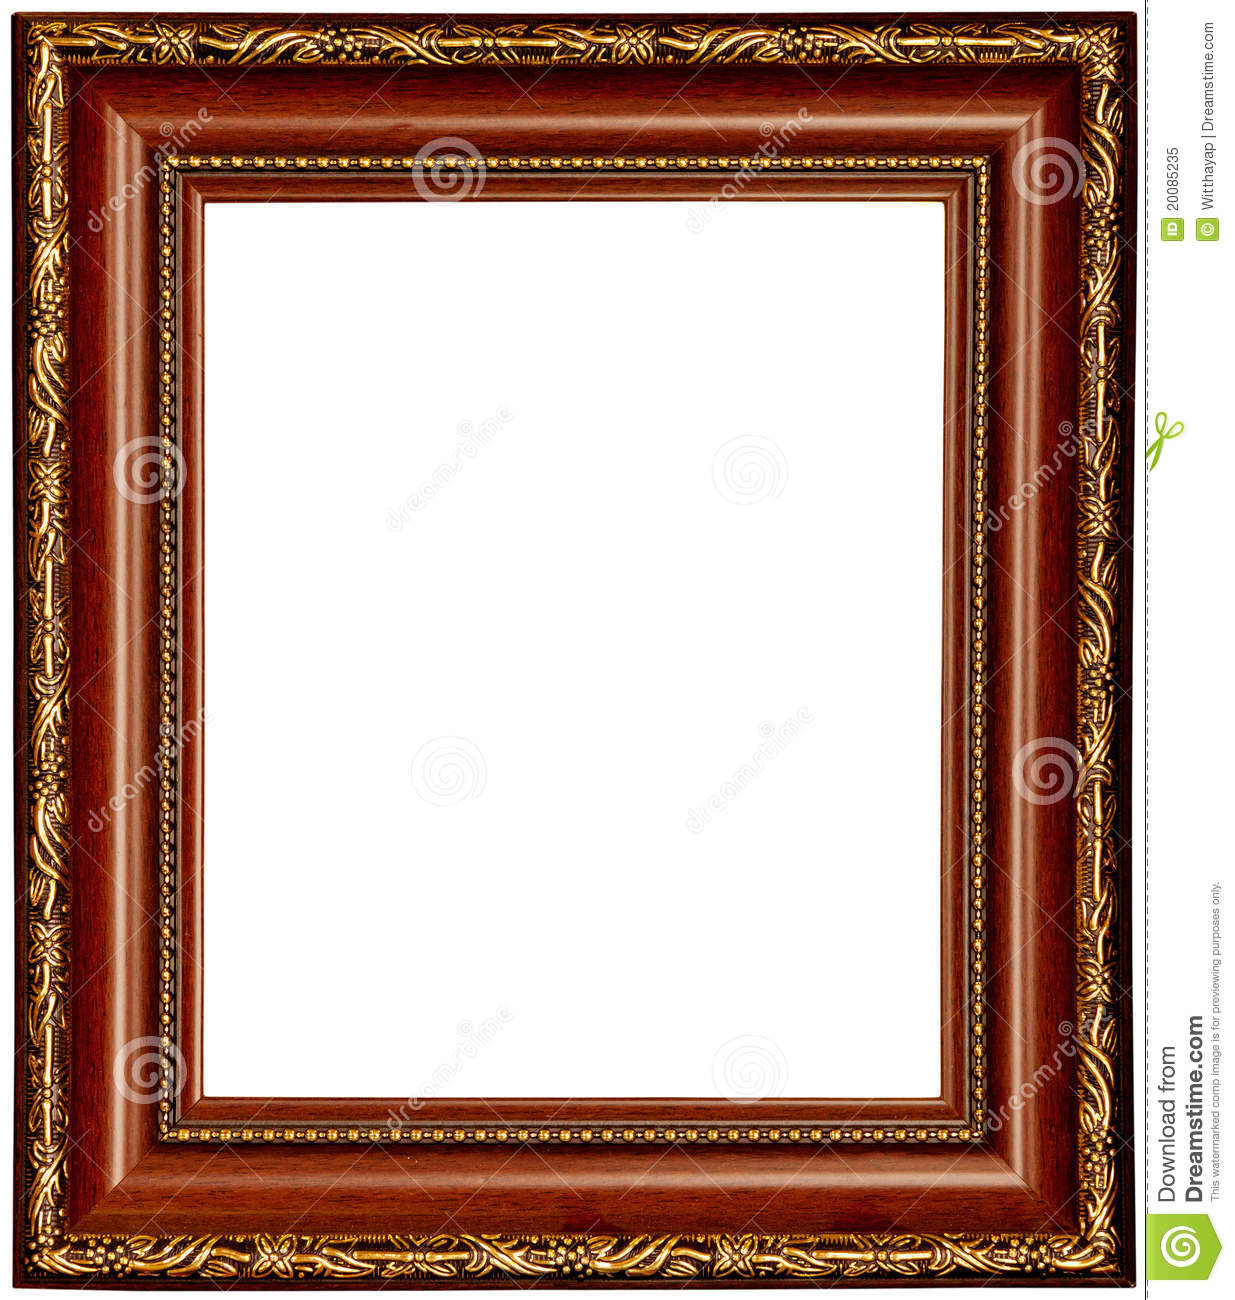 gold and wood frame stock photo 20085235 megapixl - Wood Picture Frame